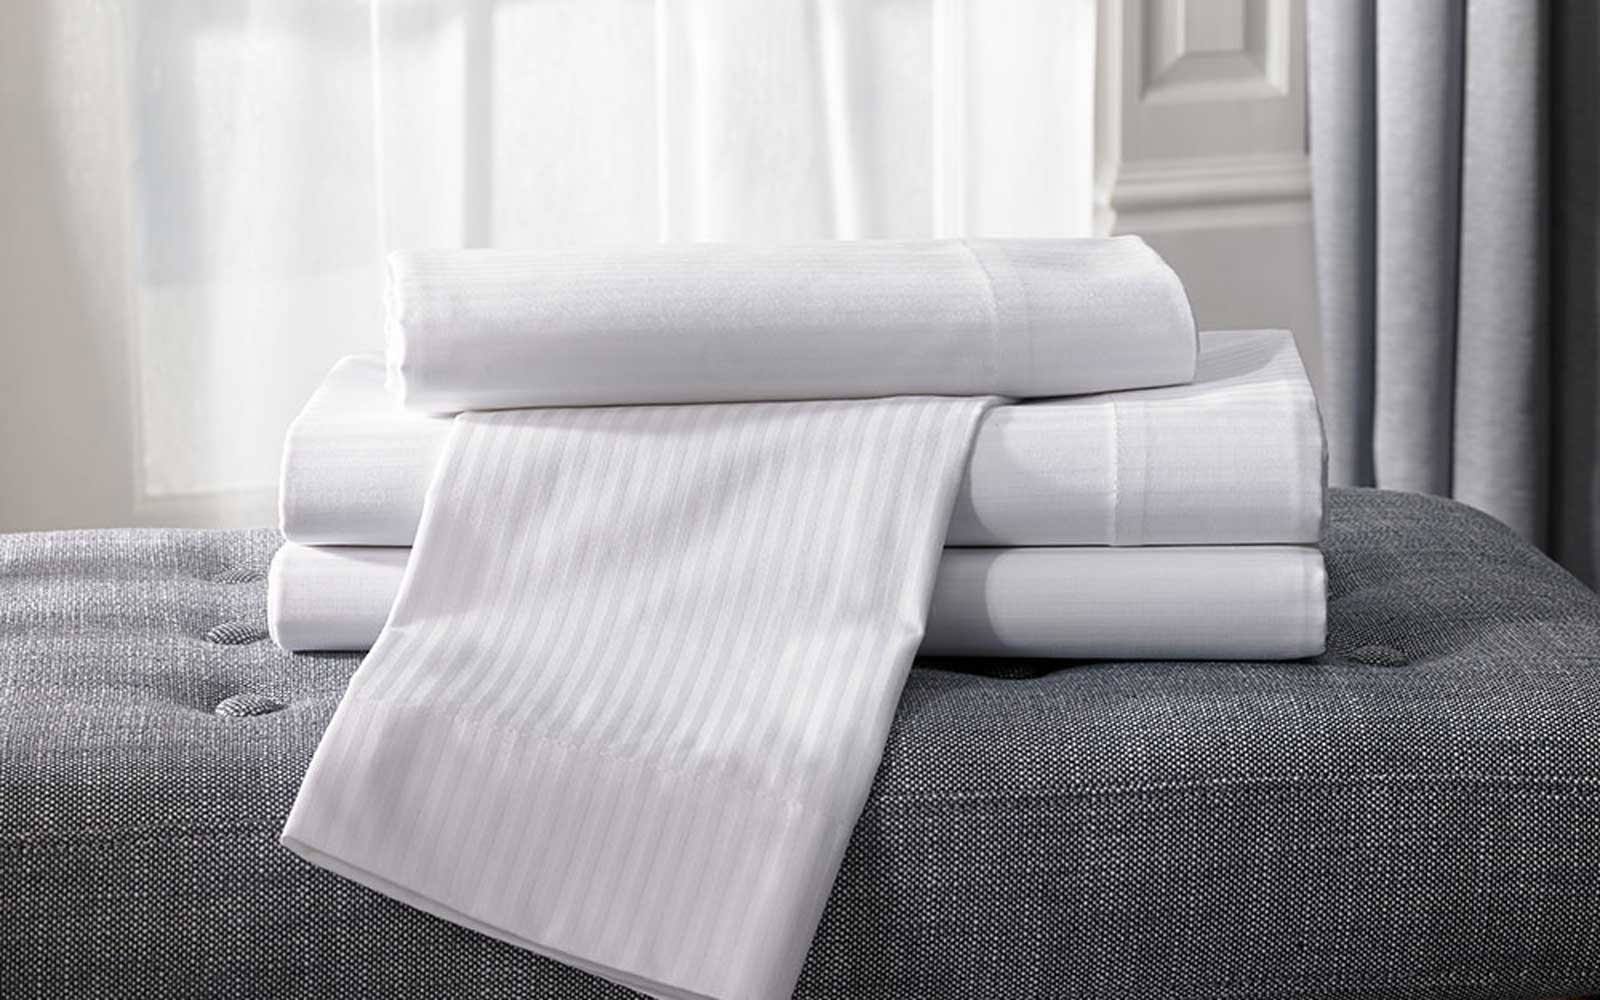 Hilton Hotel Stripe Sheet Set and Feather and Down Pillow